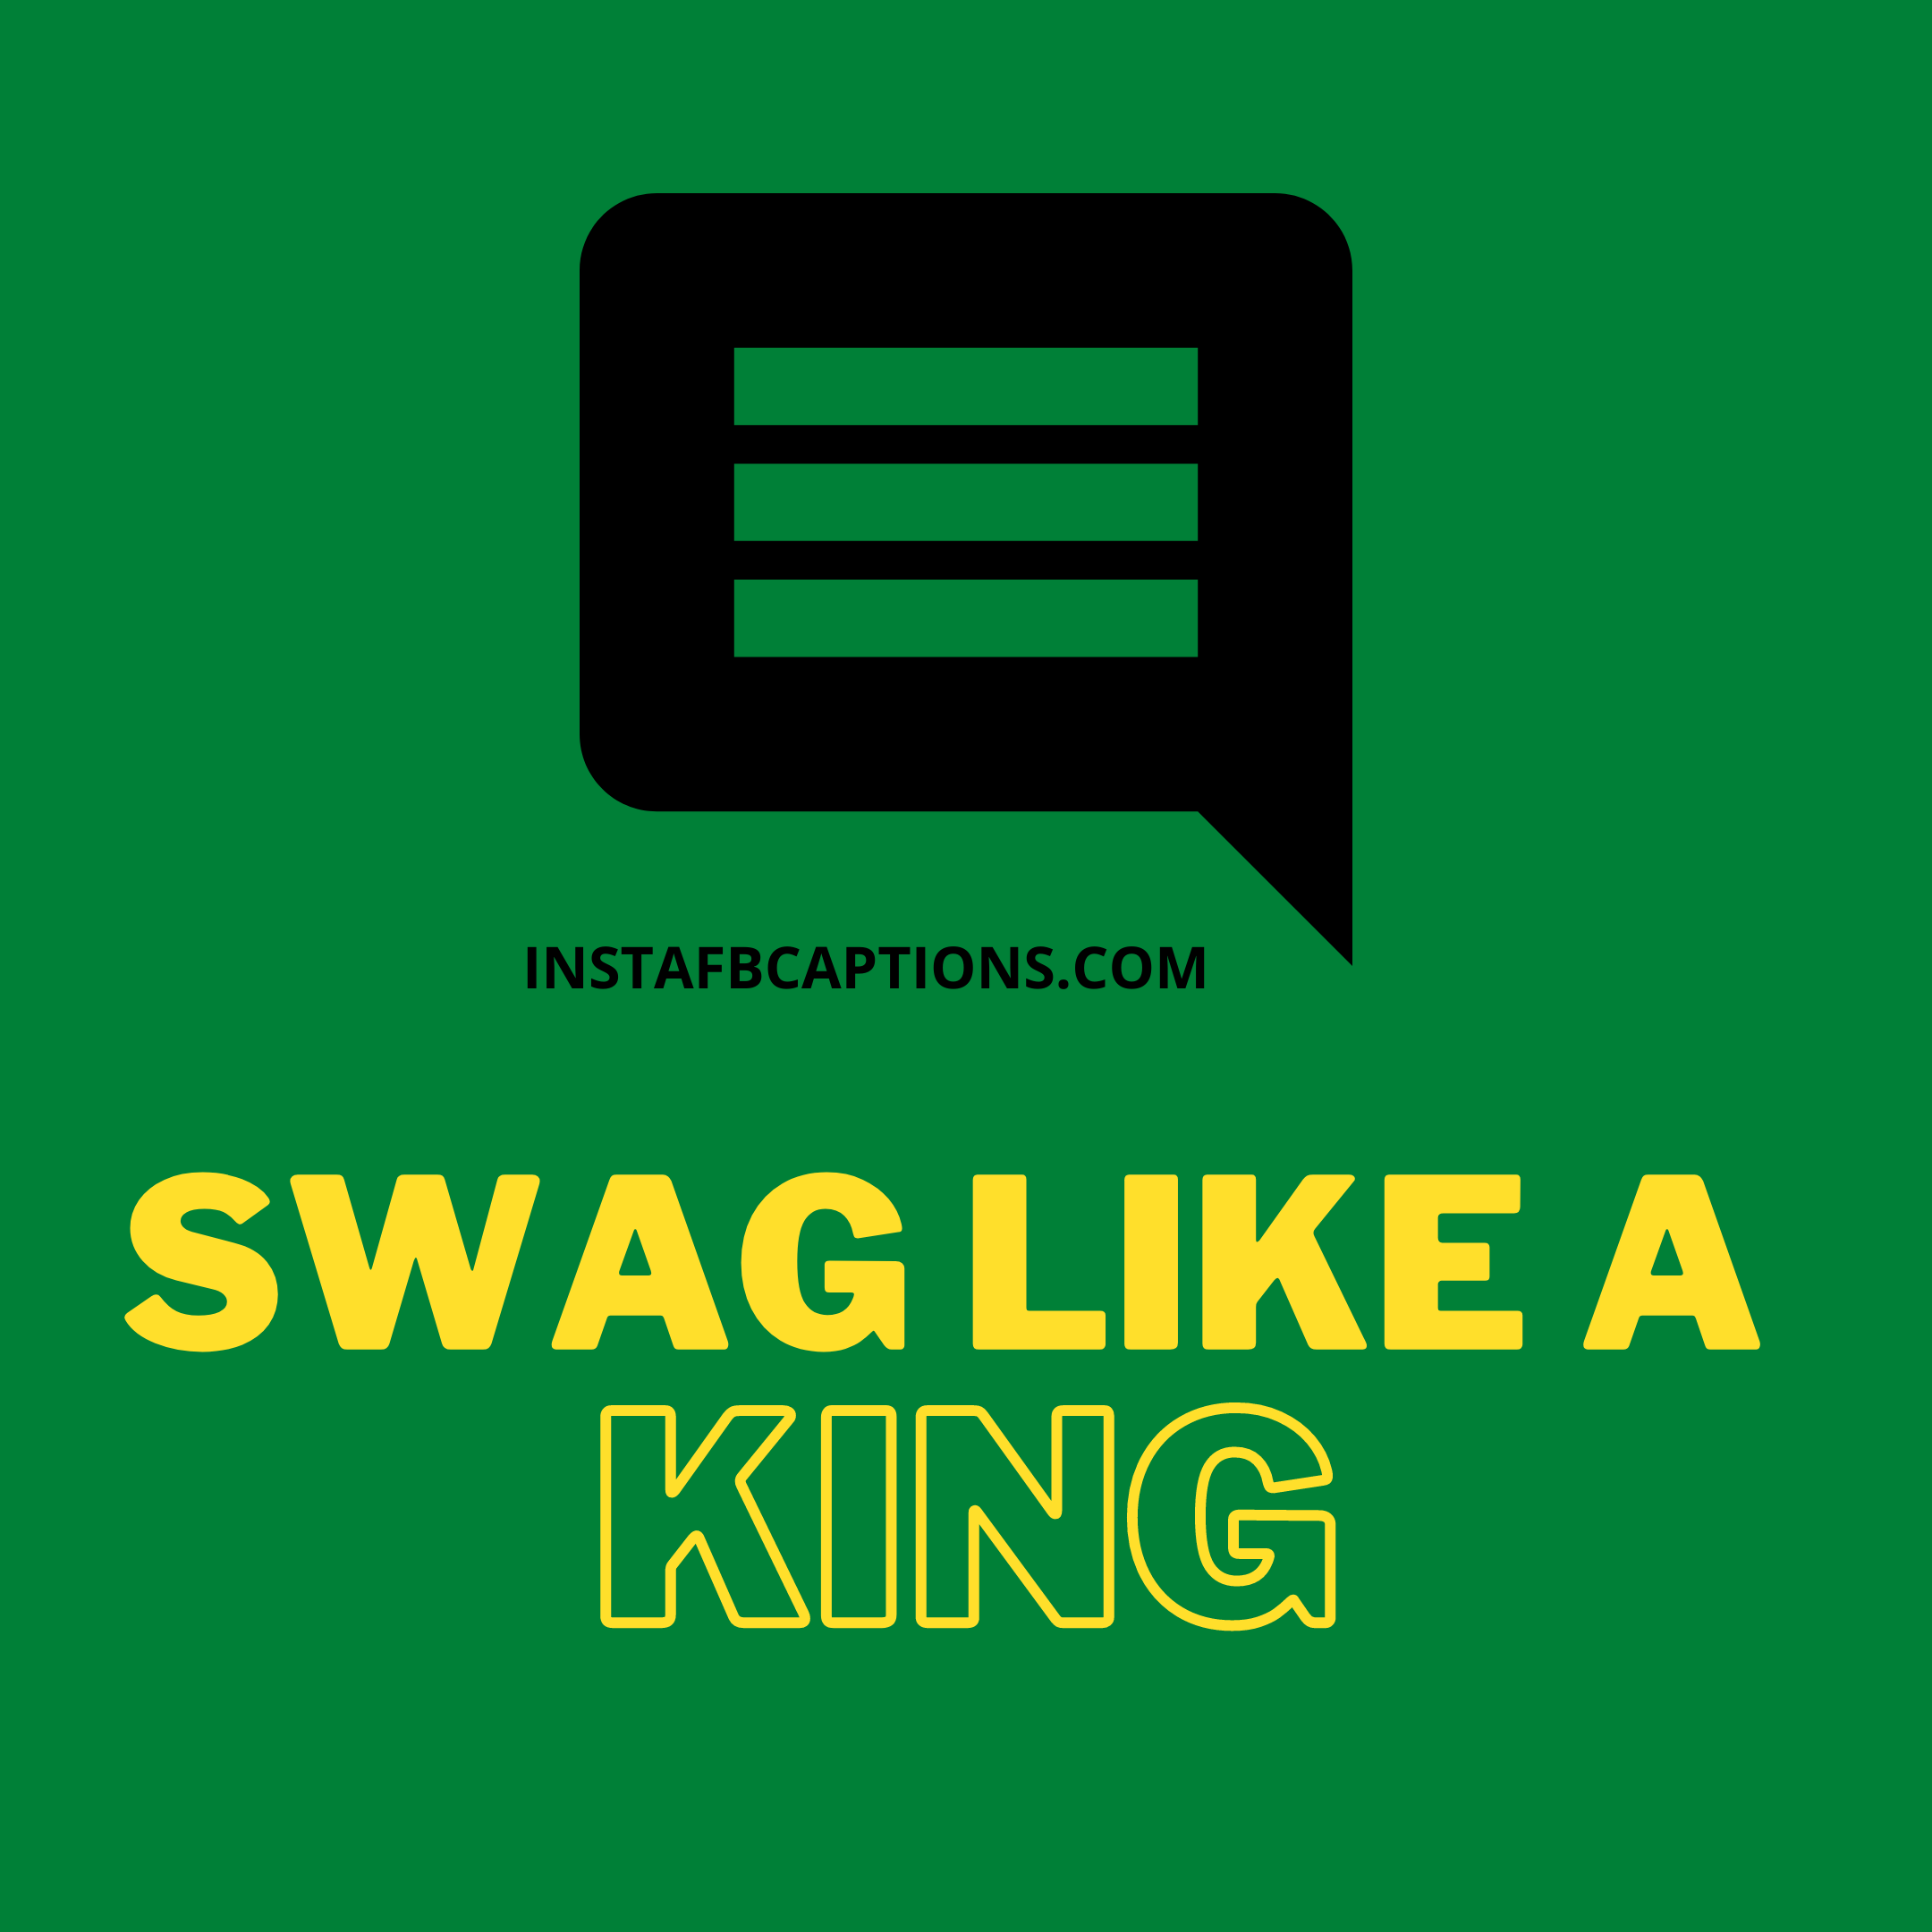 Swag Like A Ki  - Swag like a King - Best COMMENTS for BOYS PICS on Instagram 2021